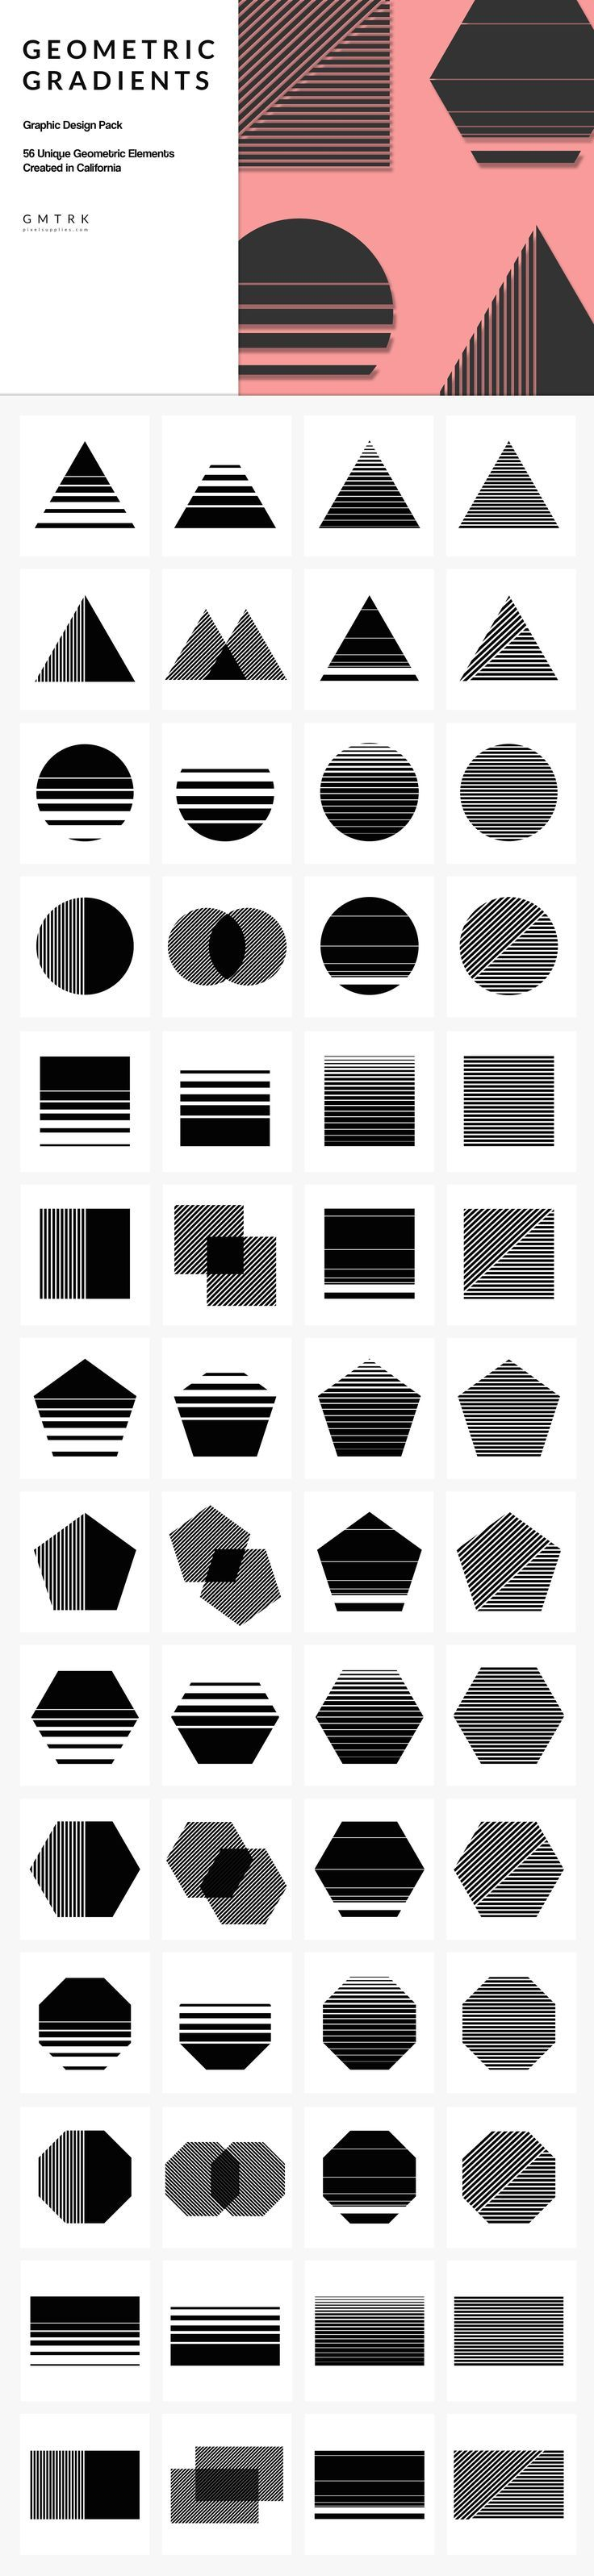 52 best Design images on Pinterest